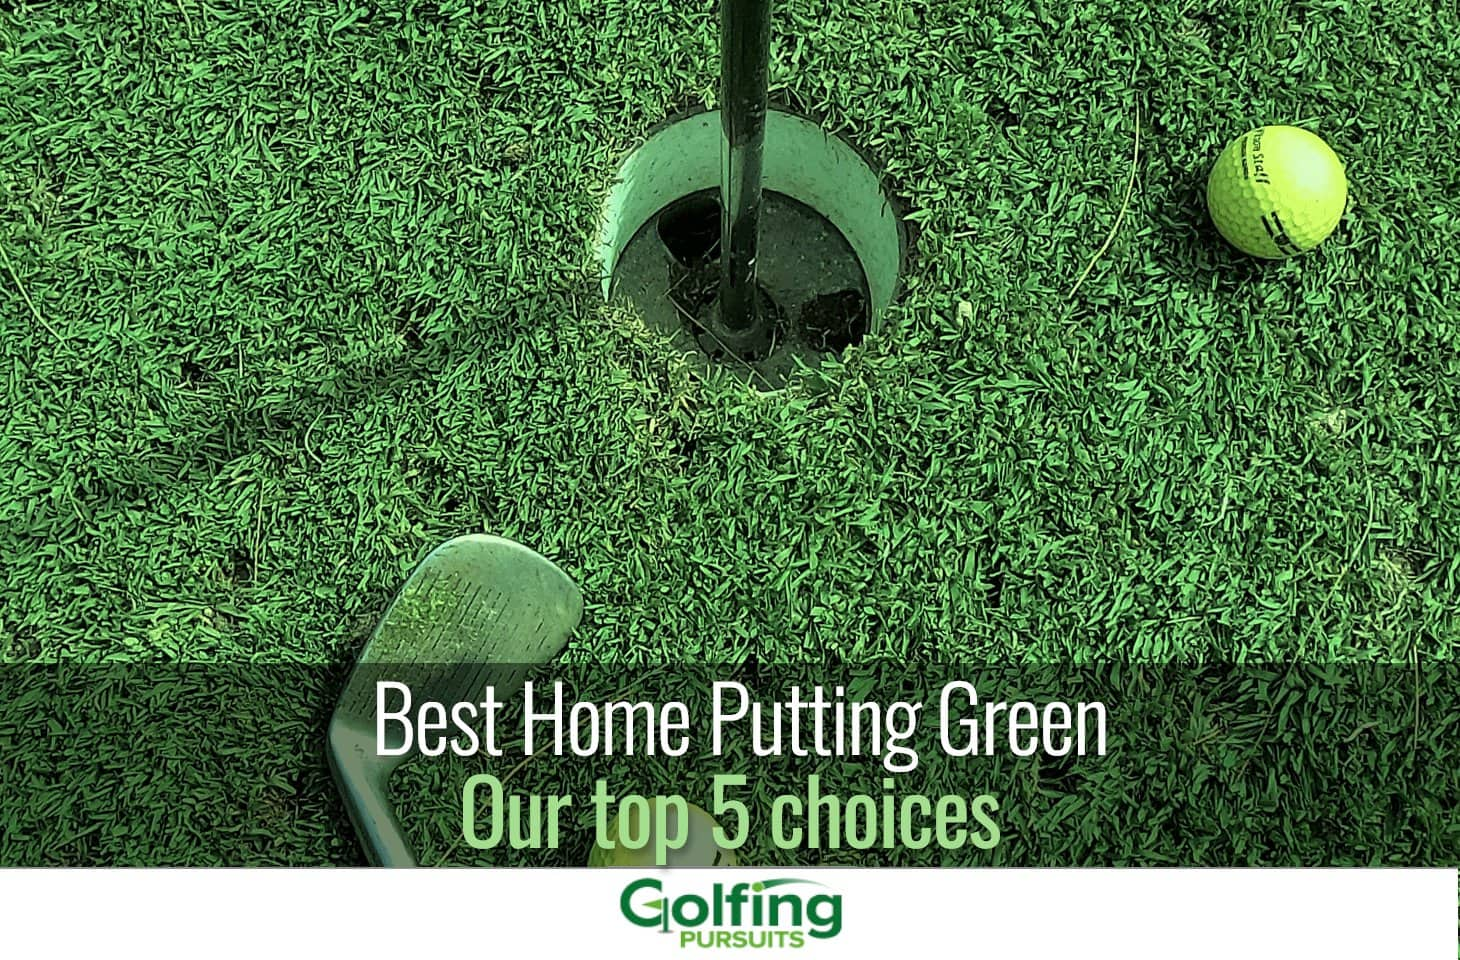 Best Home Putting Green